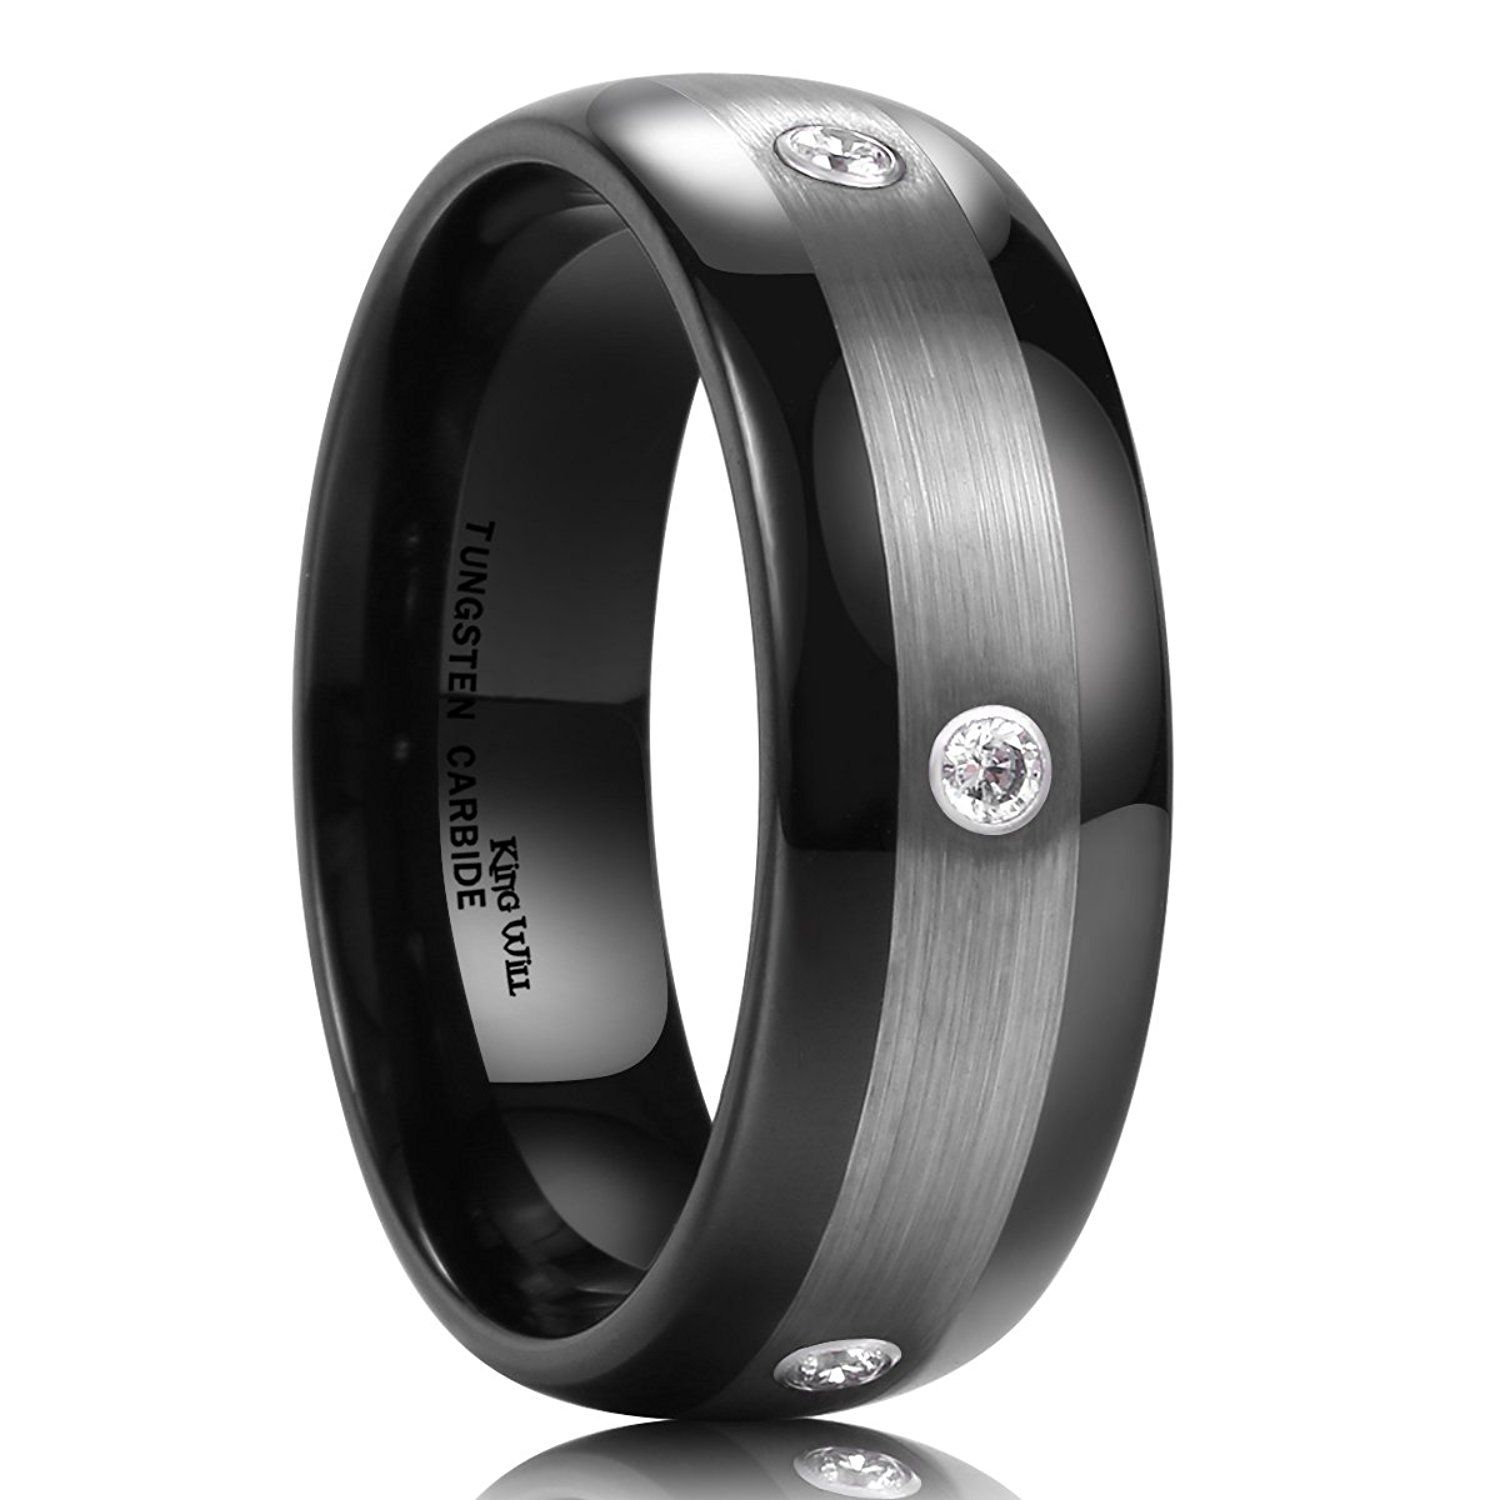 aab6dbc11c8 King Will 8mm Black Tungsten Carbide Ring Matte Finished 3 Cubic Zirconia  Stones Wedding Band